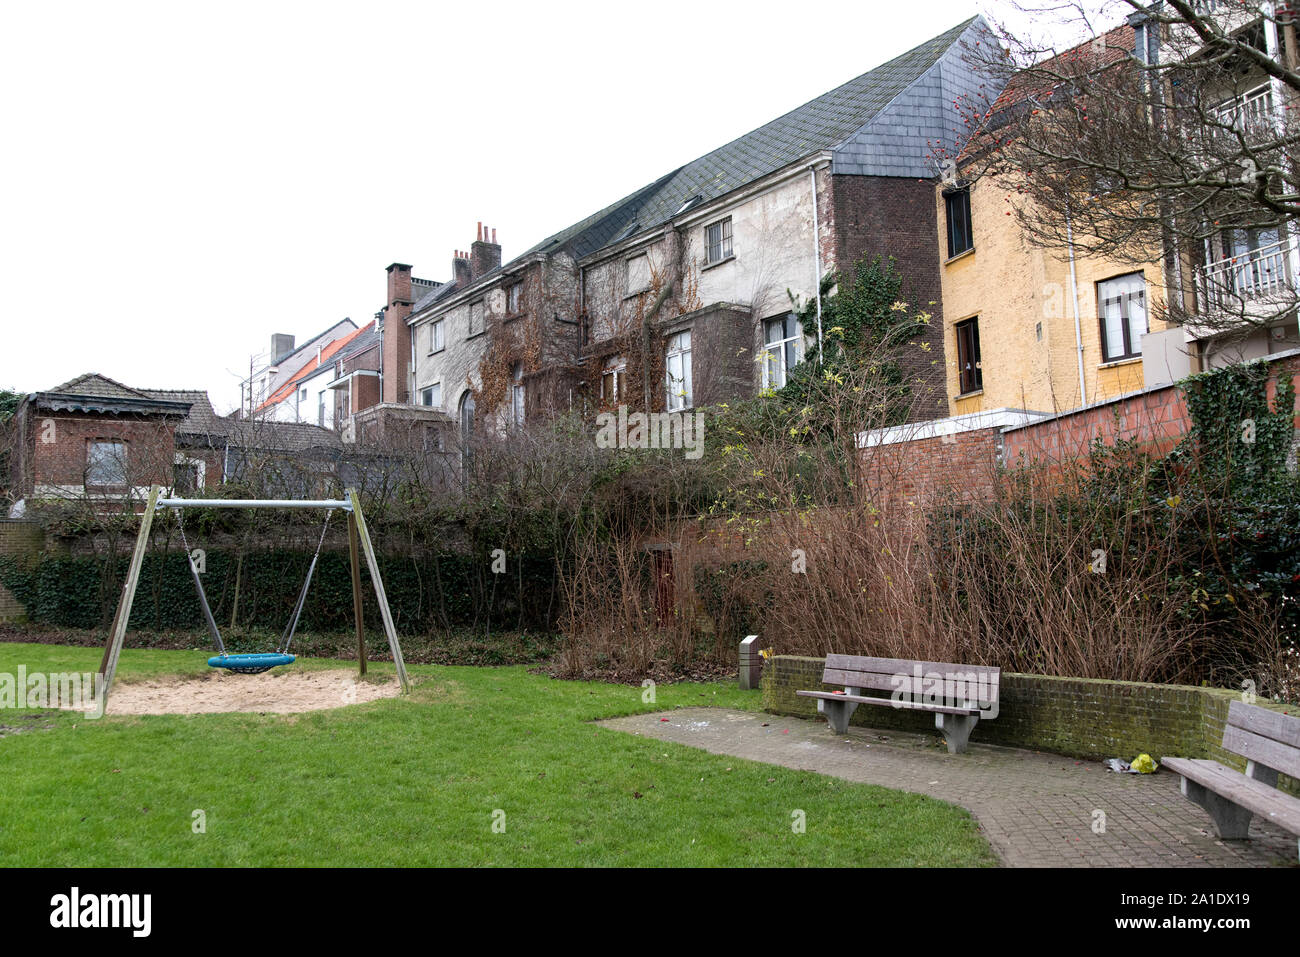 An empty playscape in Ghent, East Flanders, Belgium. Stock Photo